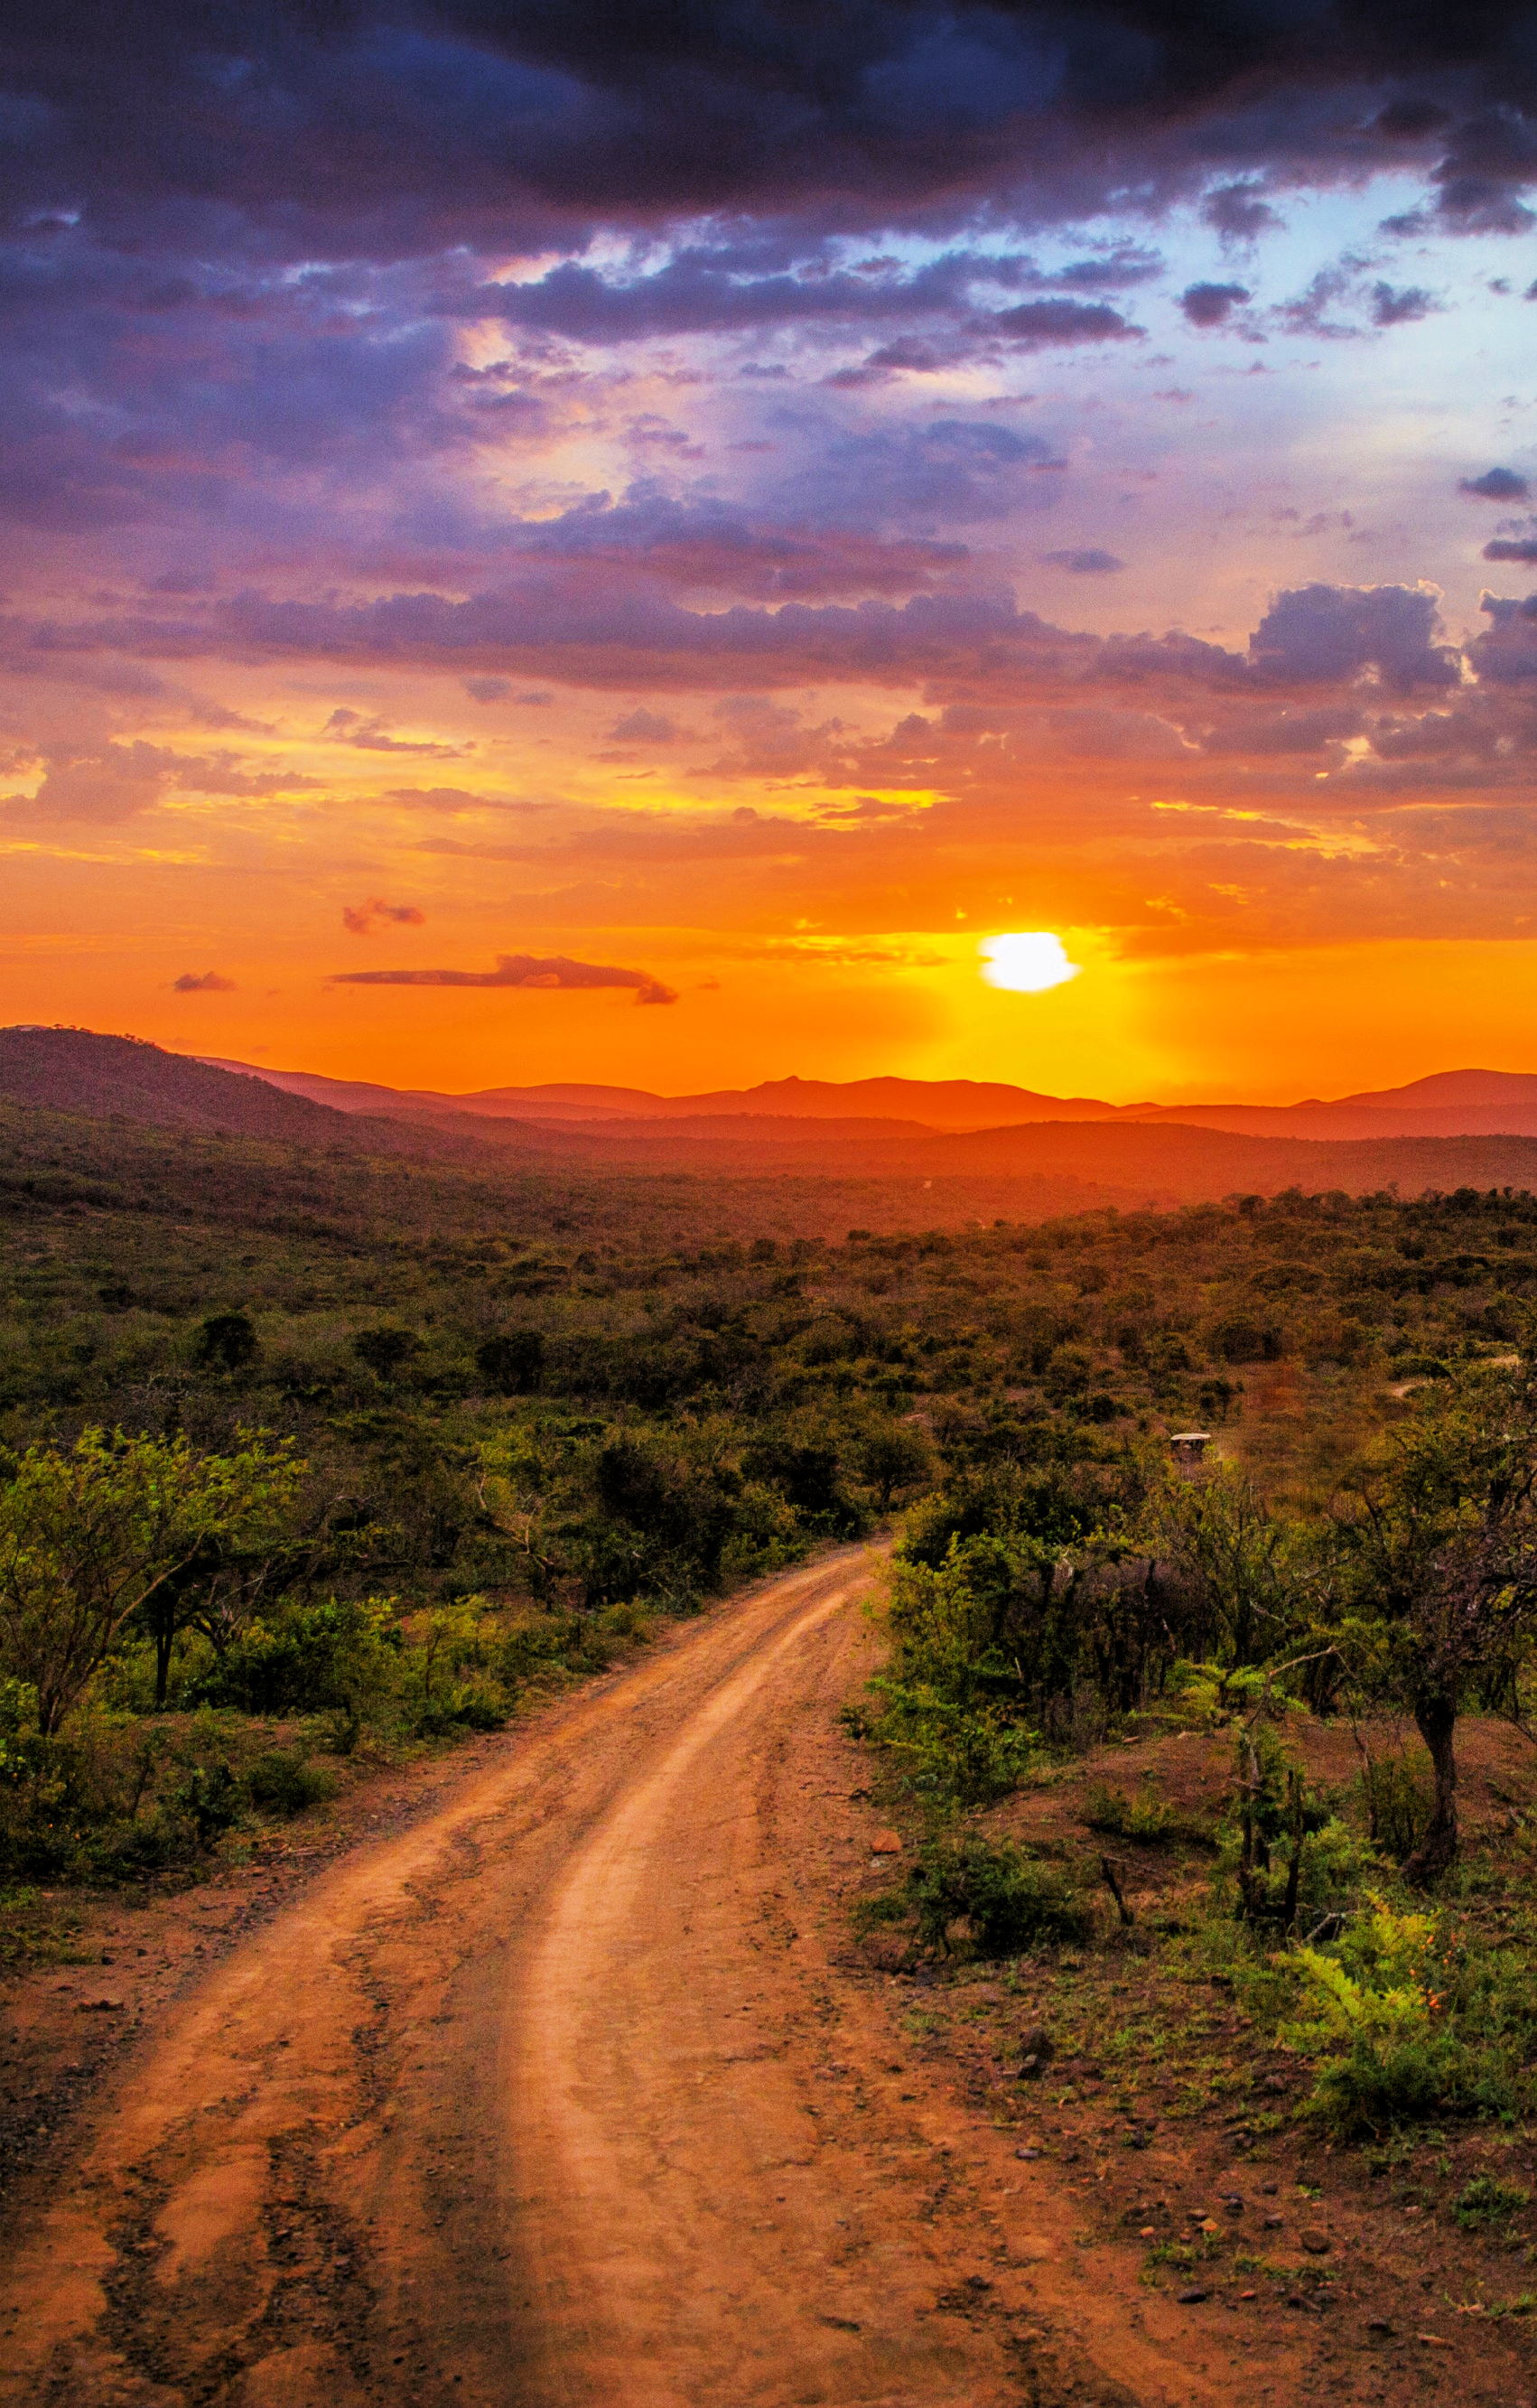 210 African Landscapes Ideas Africa Africa Travel Scenery